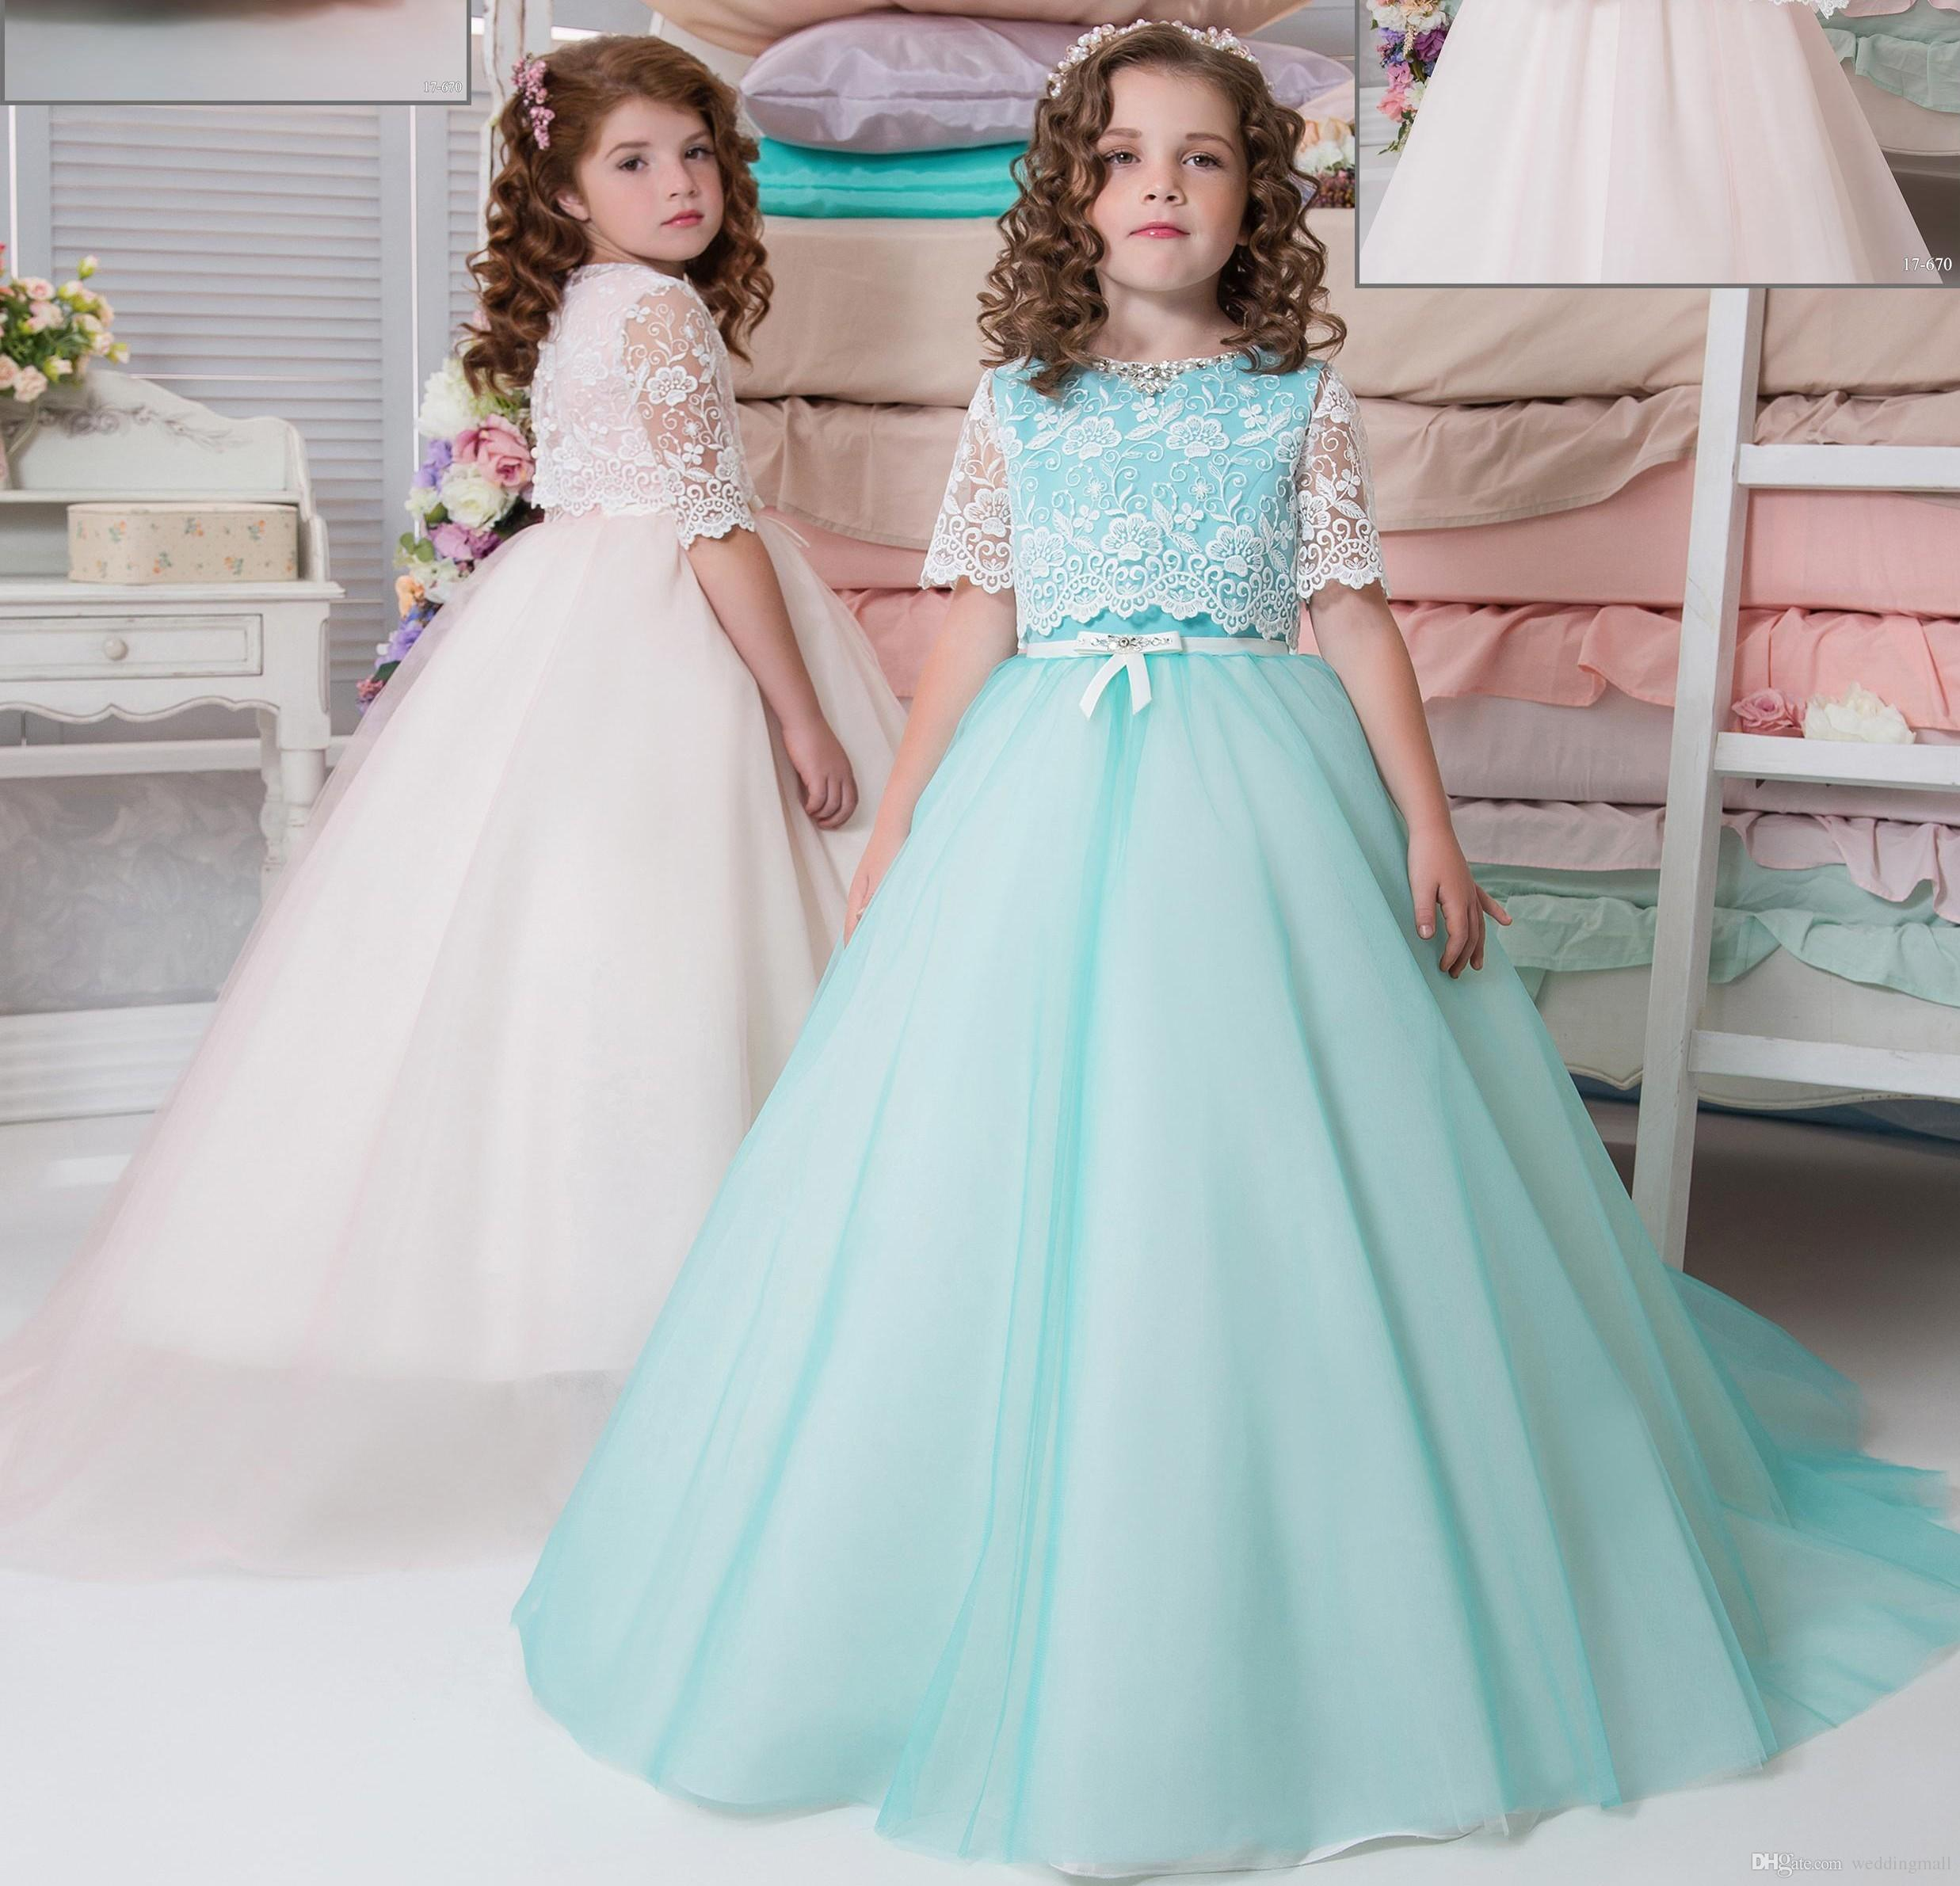 Outstanding Little Girl Dresses For Weddings Cheap Pictures - All ...